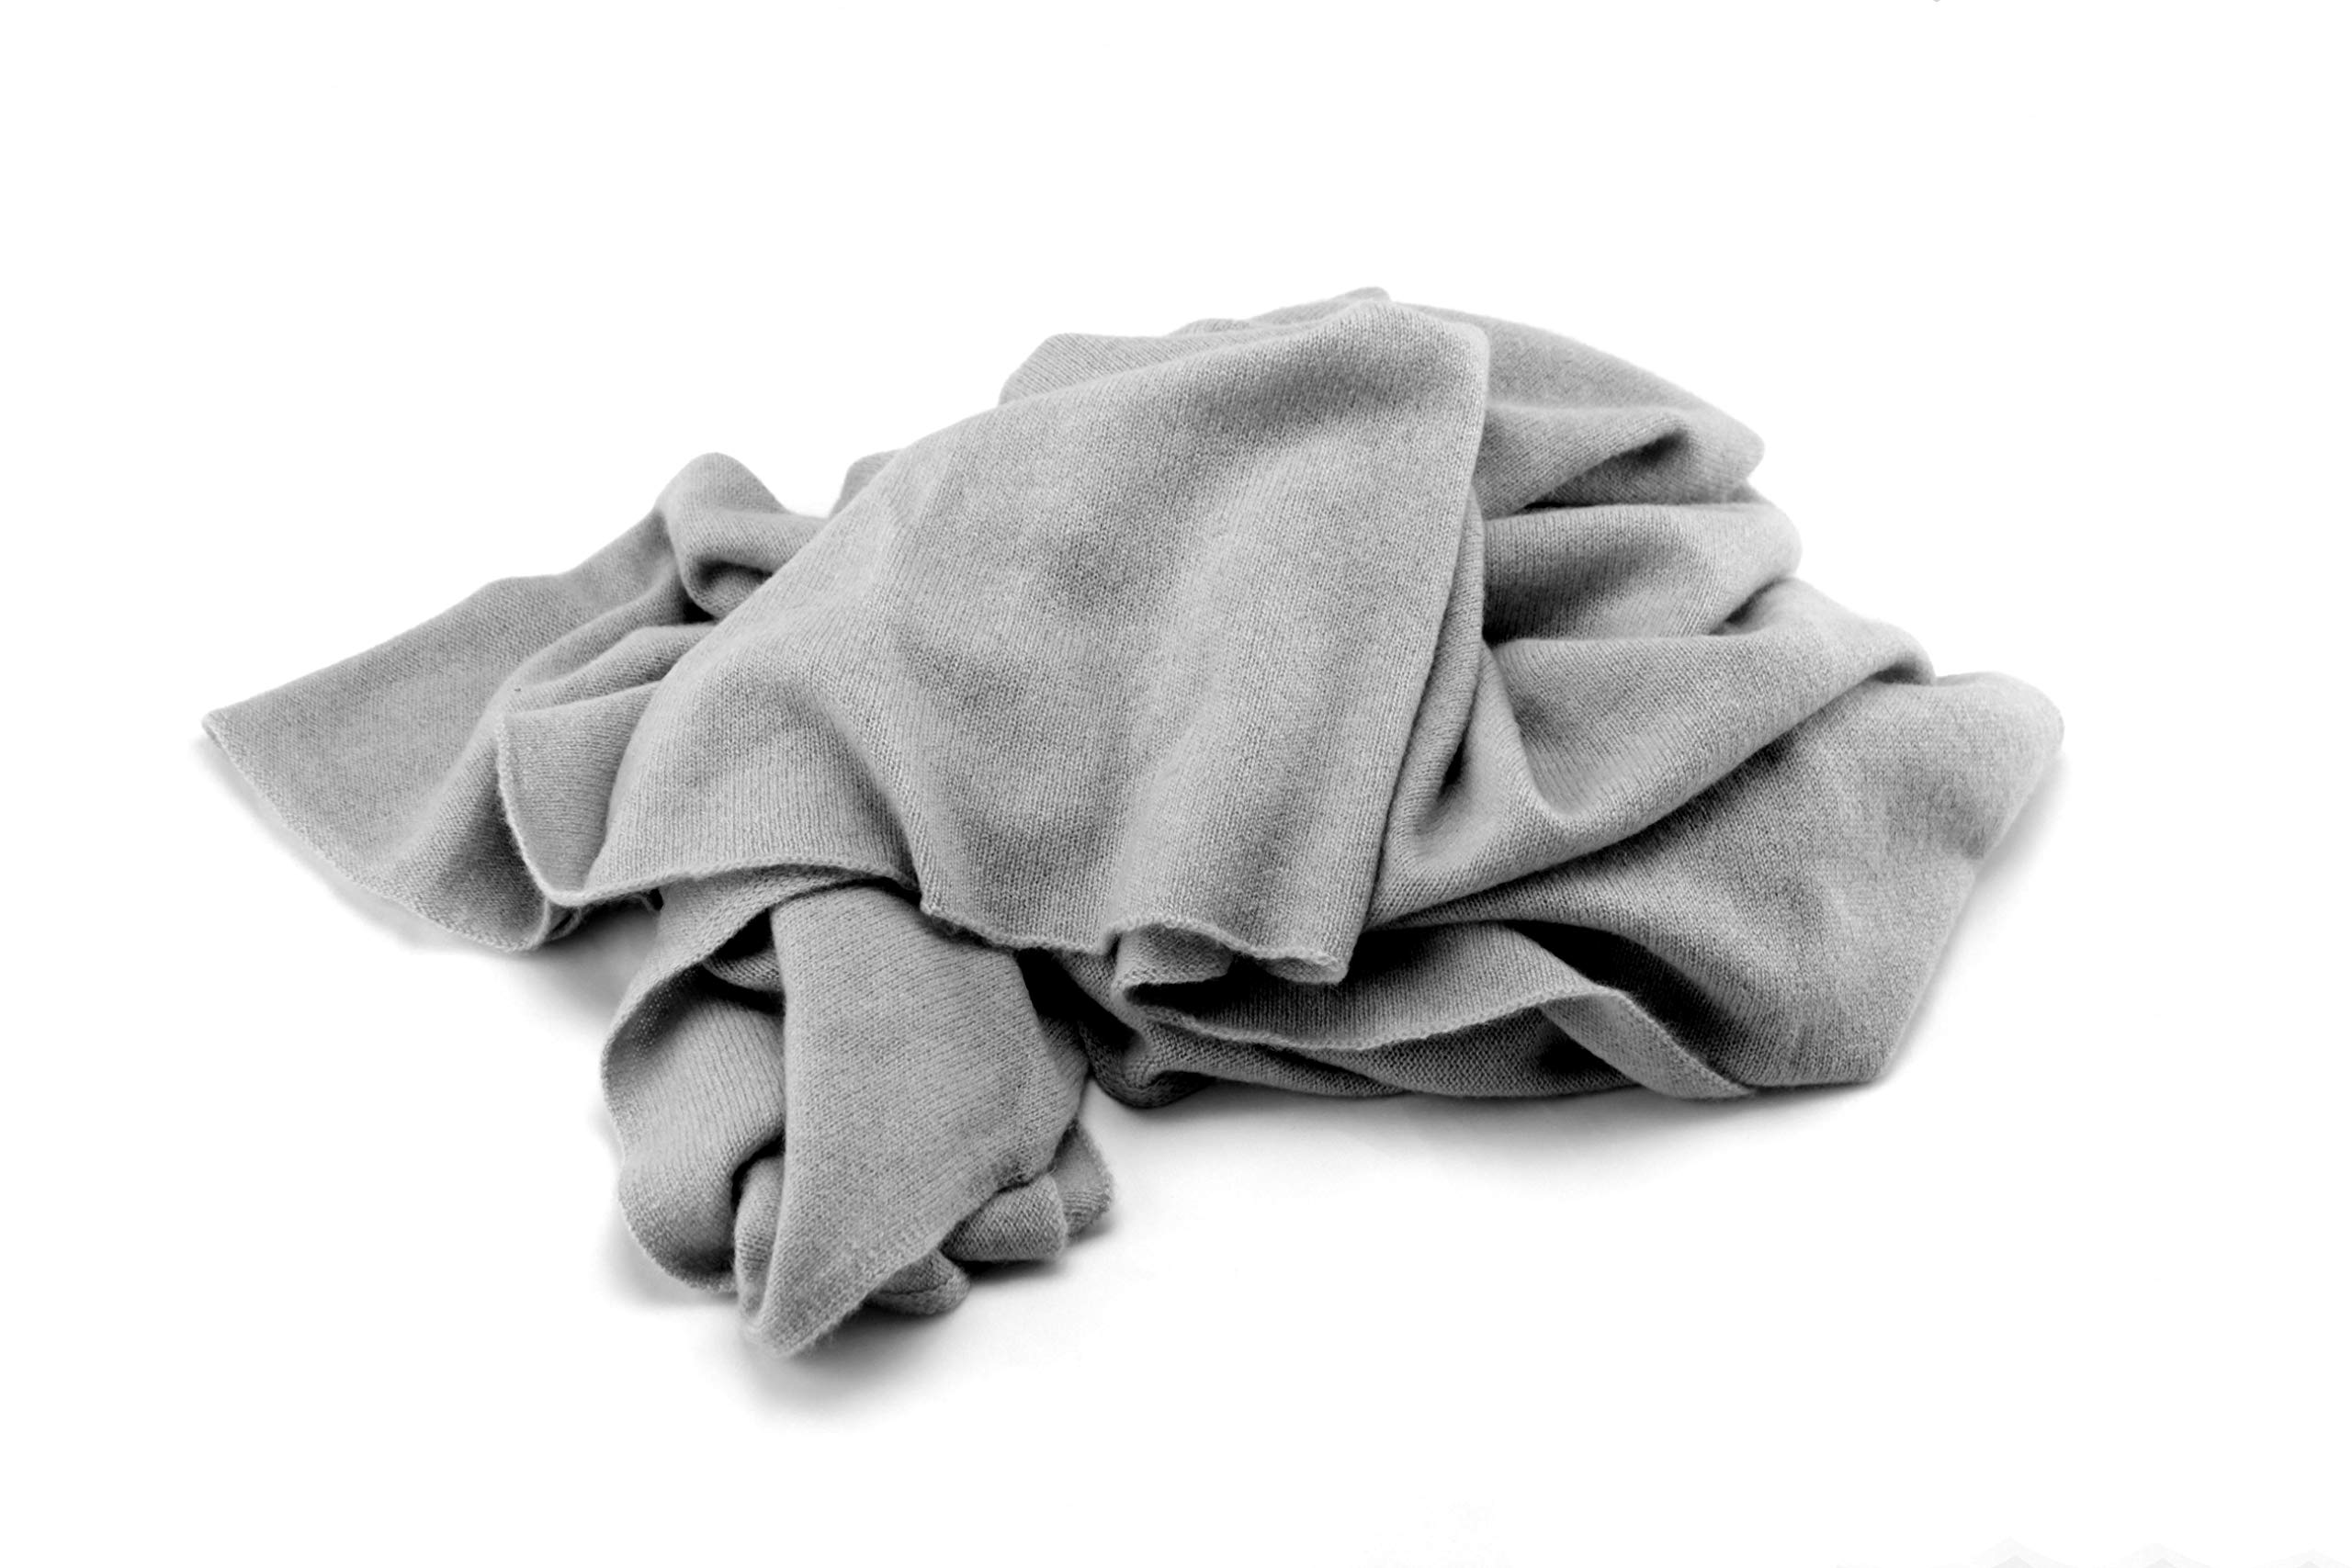 Jet&Bo 100% Pure Cashmere Lightweight Travel Wrap & Scarf Gray 7GG by Jet&Bo